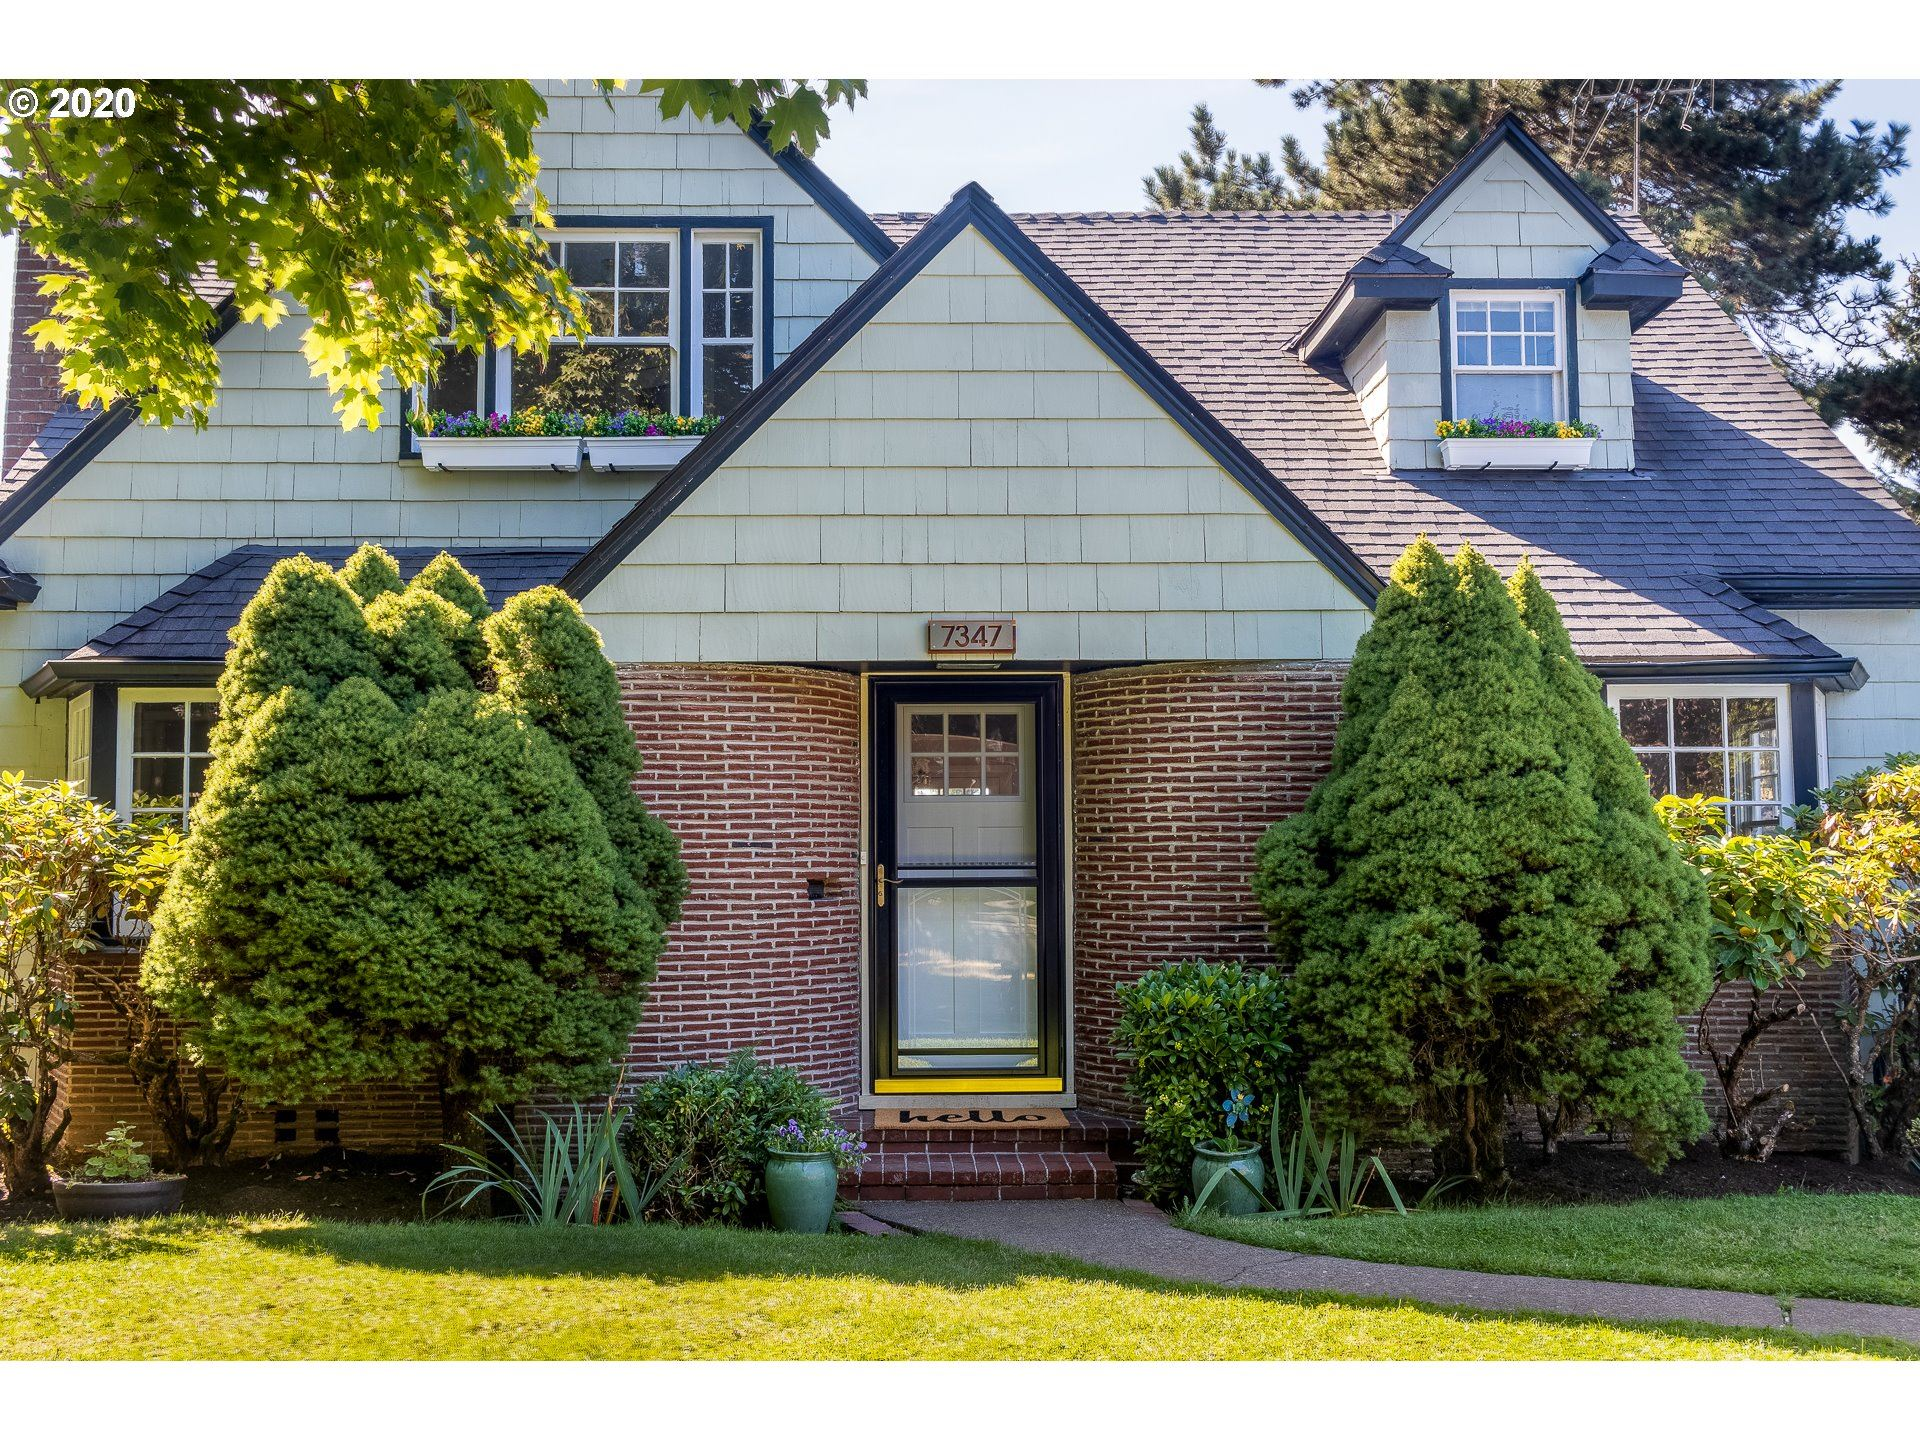 7347 SE 29TH AVE, Portland, OR 97202 - MLS#: 20368493